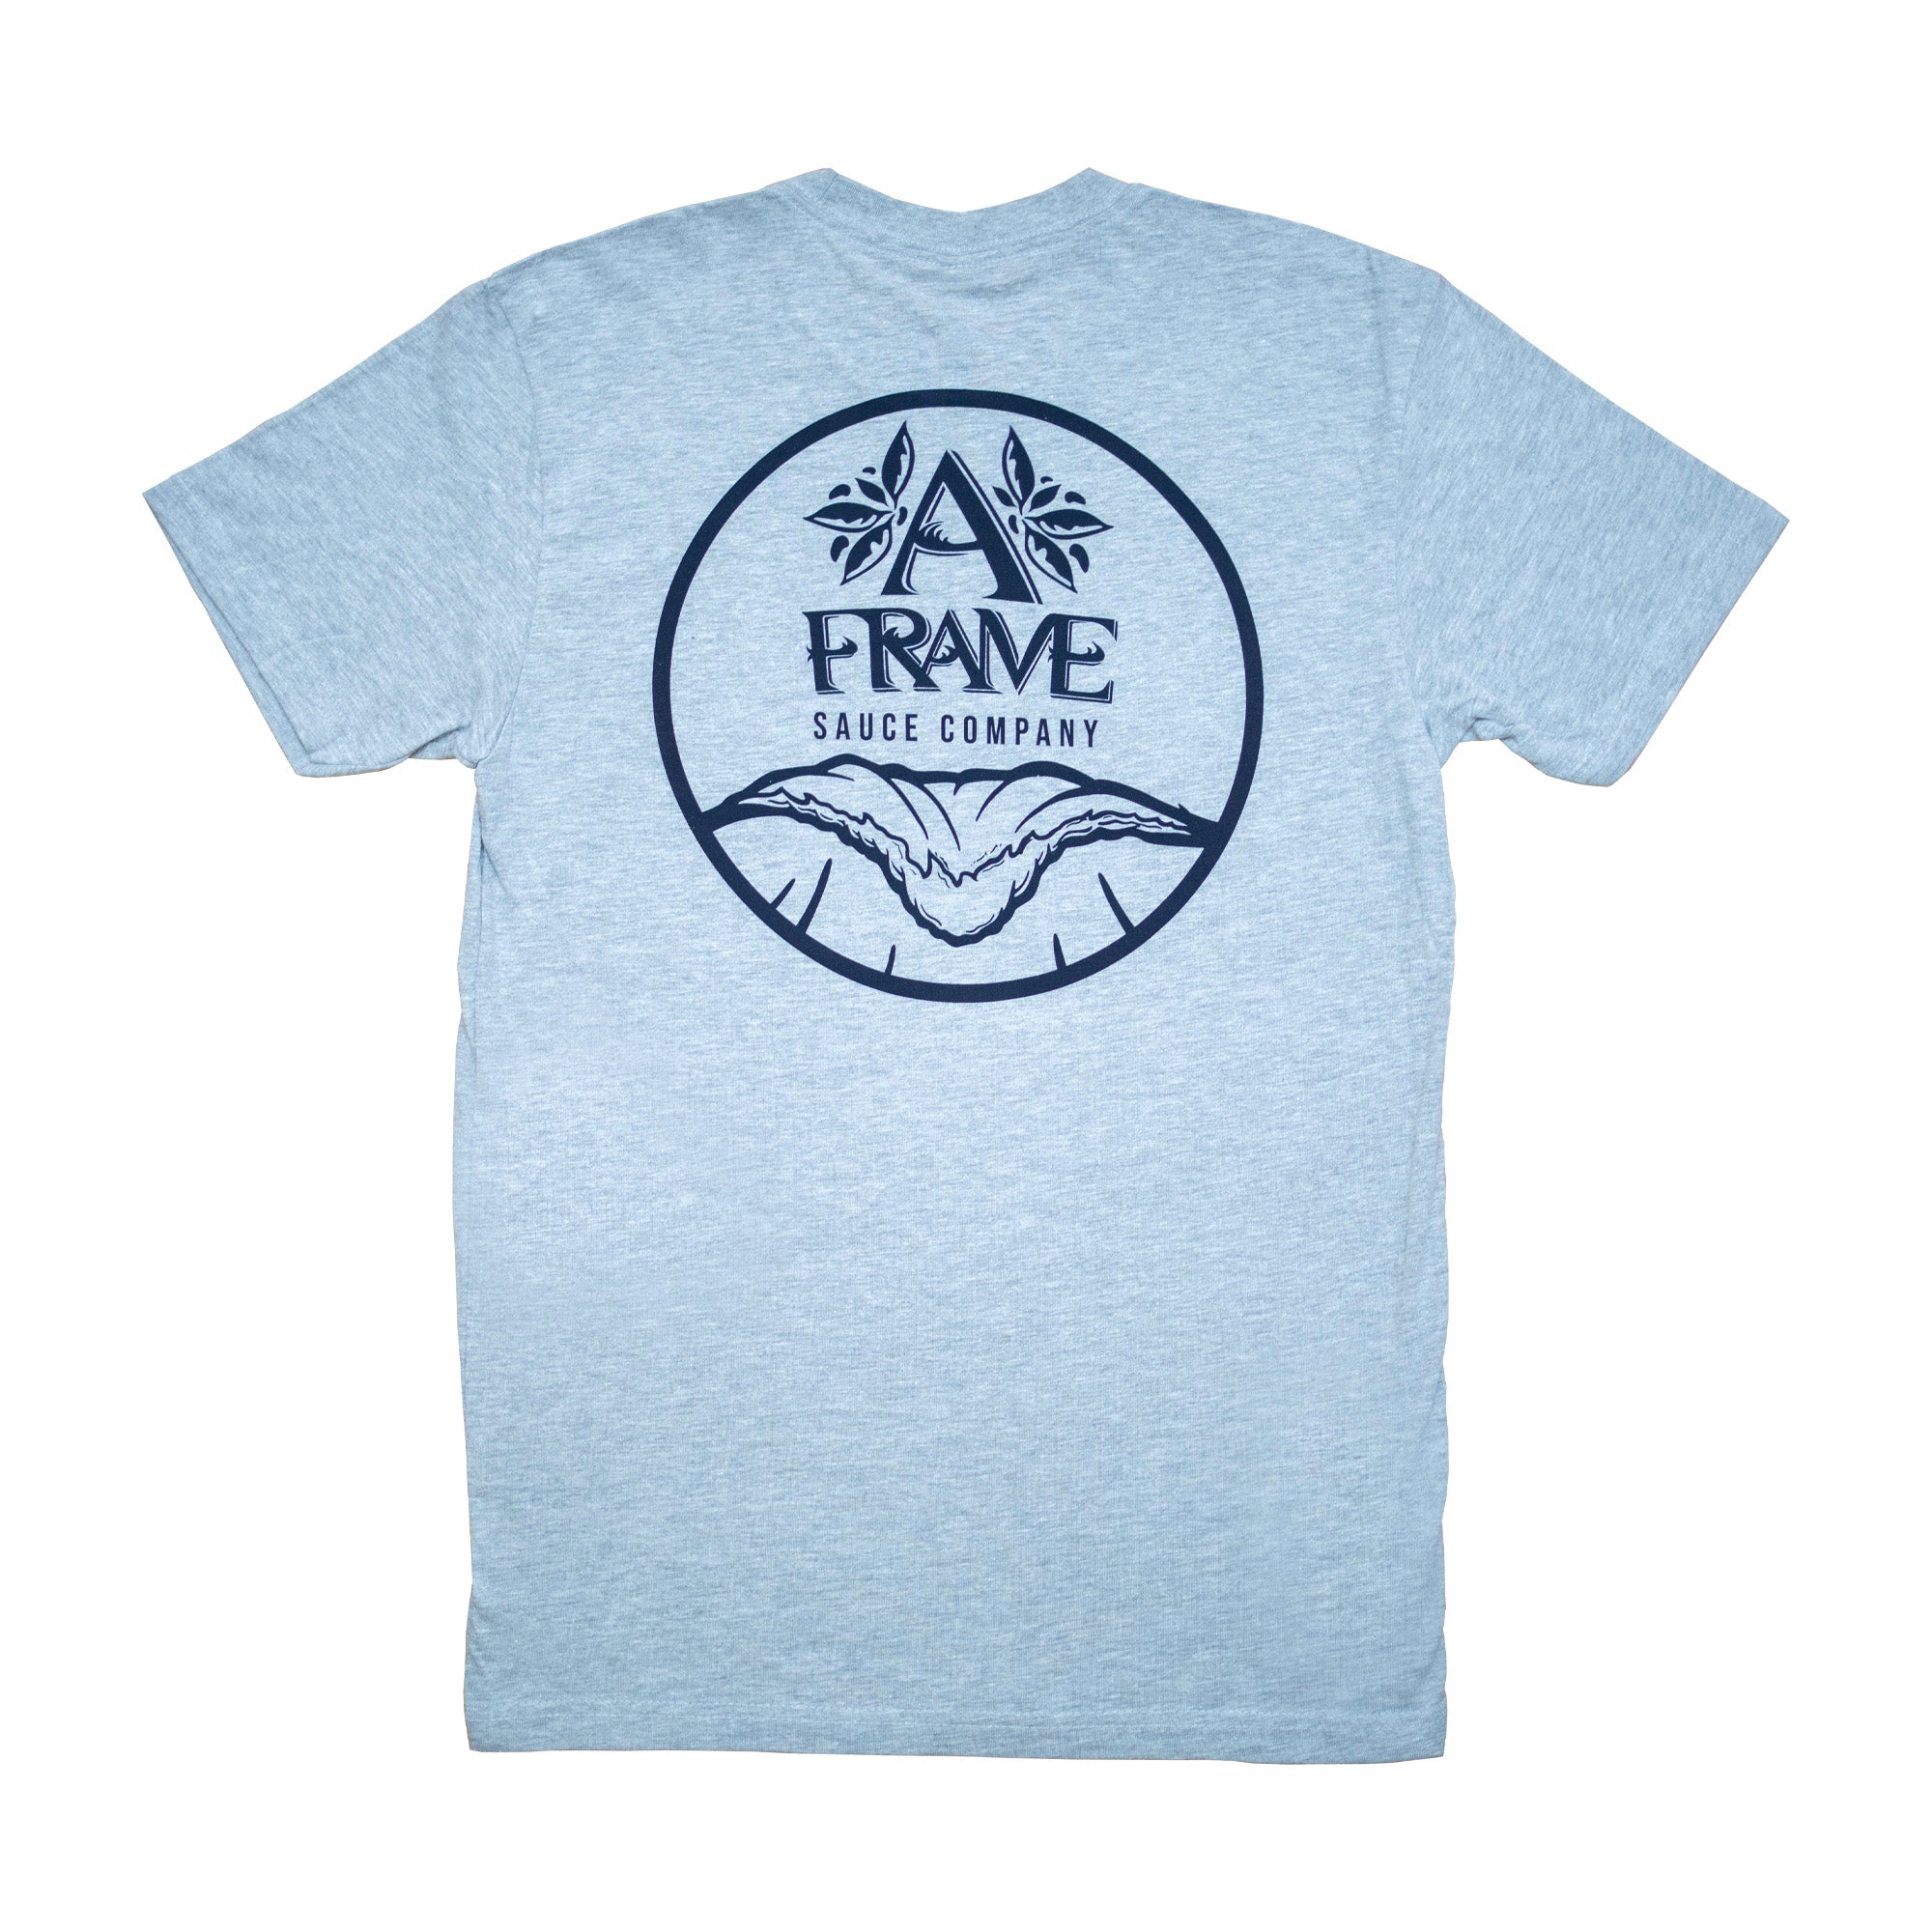 A Frame Men's S/S T-Shirt